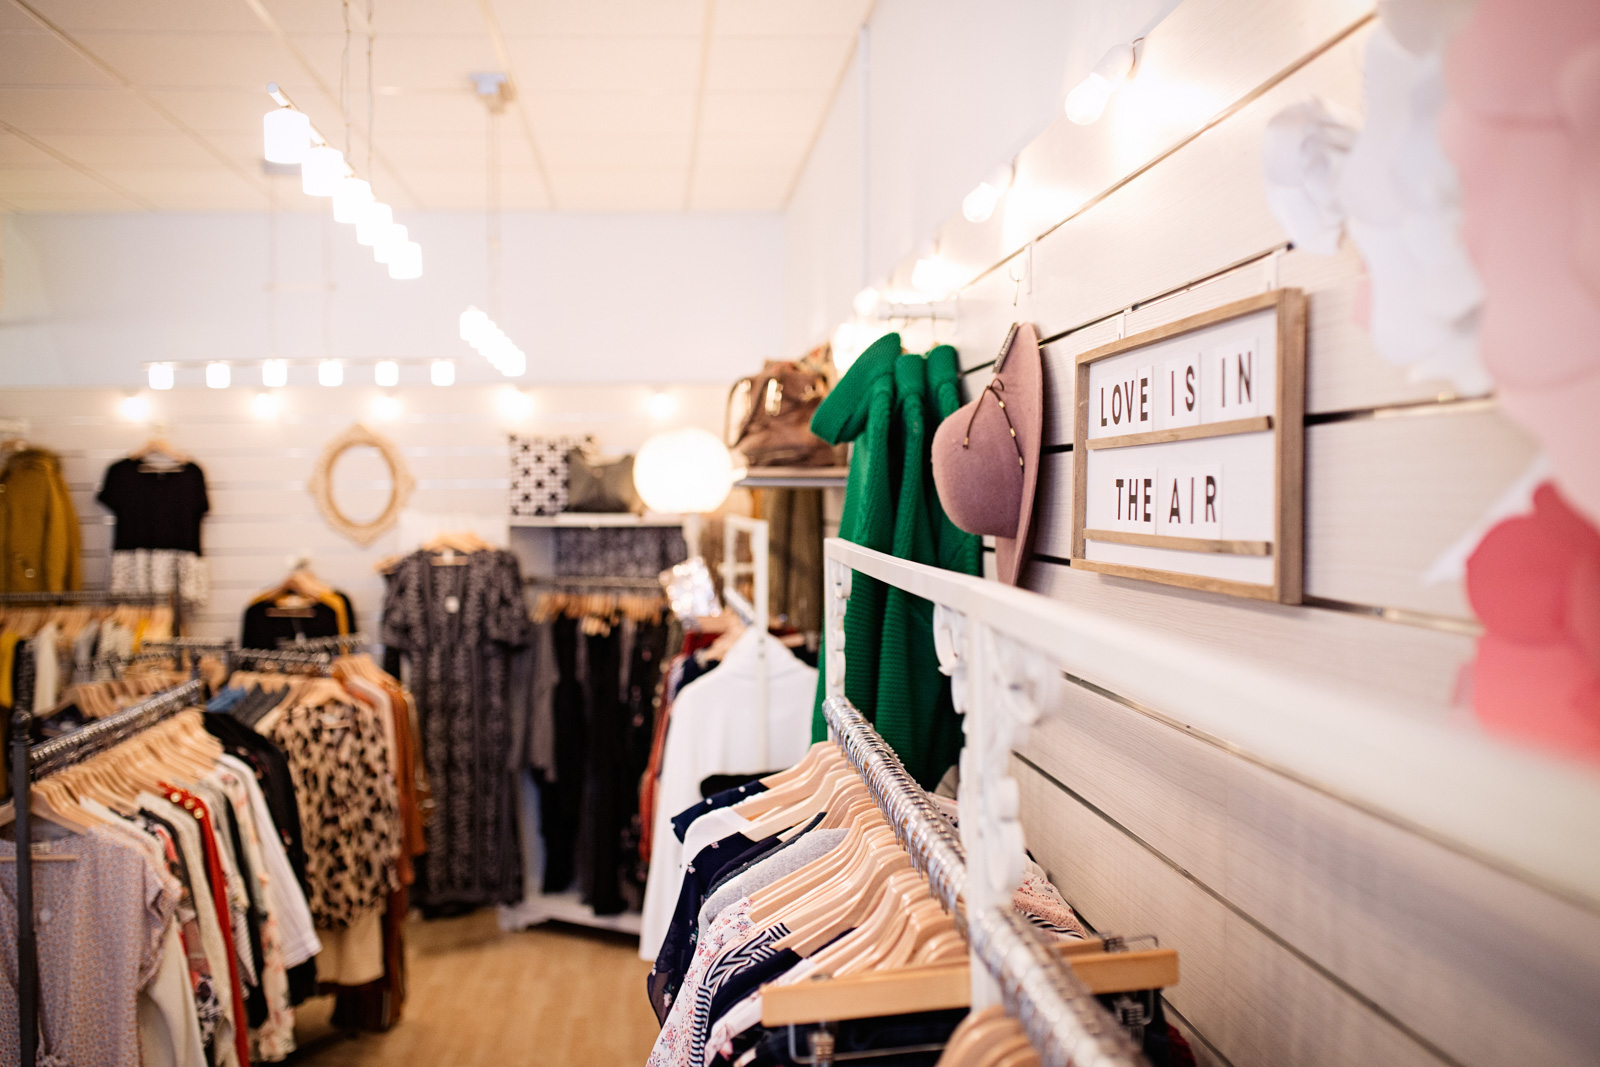 Meadow boutique seattle retail clothing store Yuliya Rae photography branding services-13.jpg